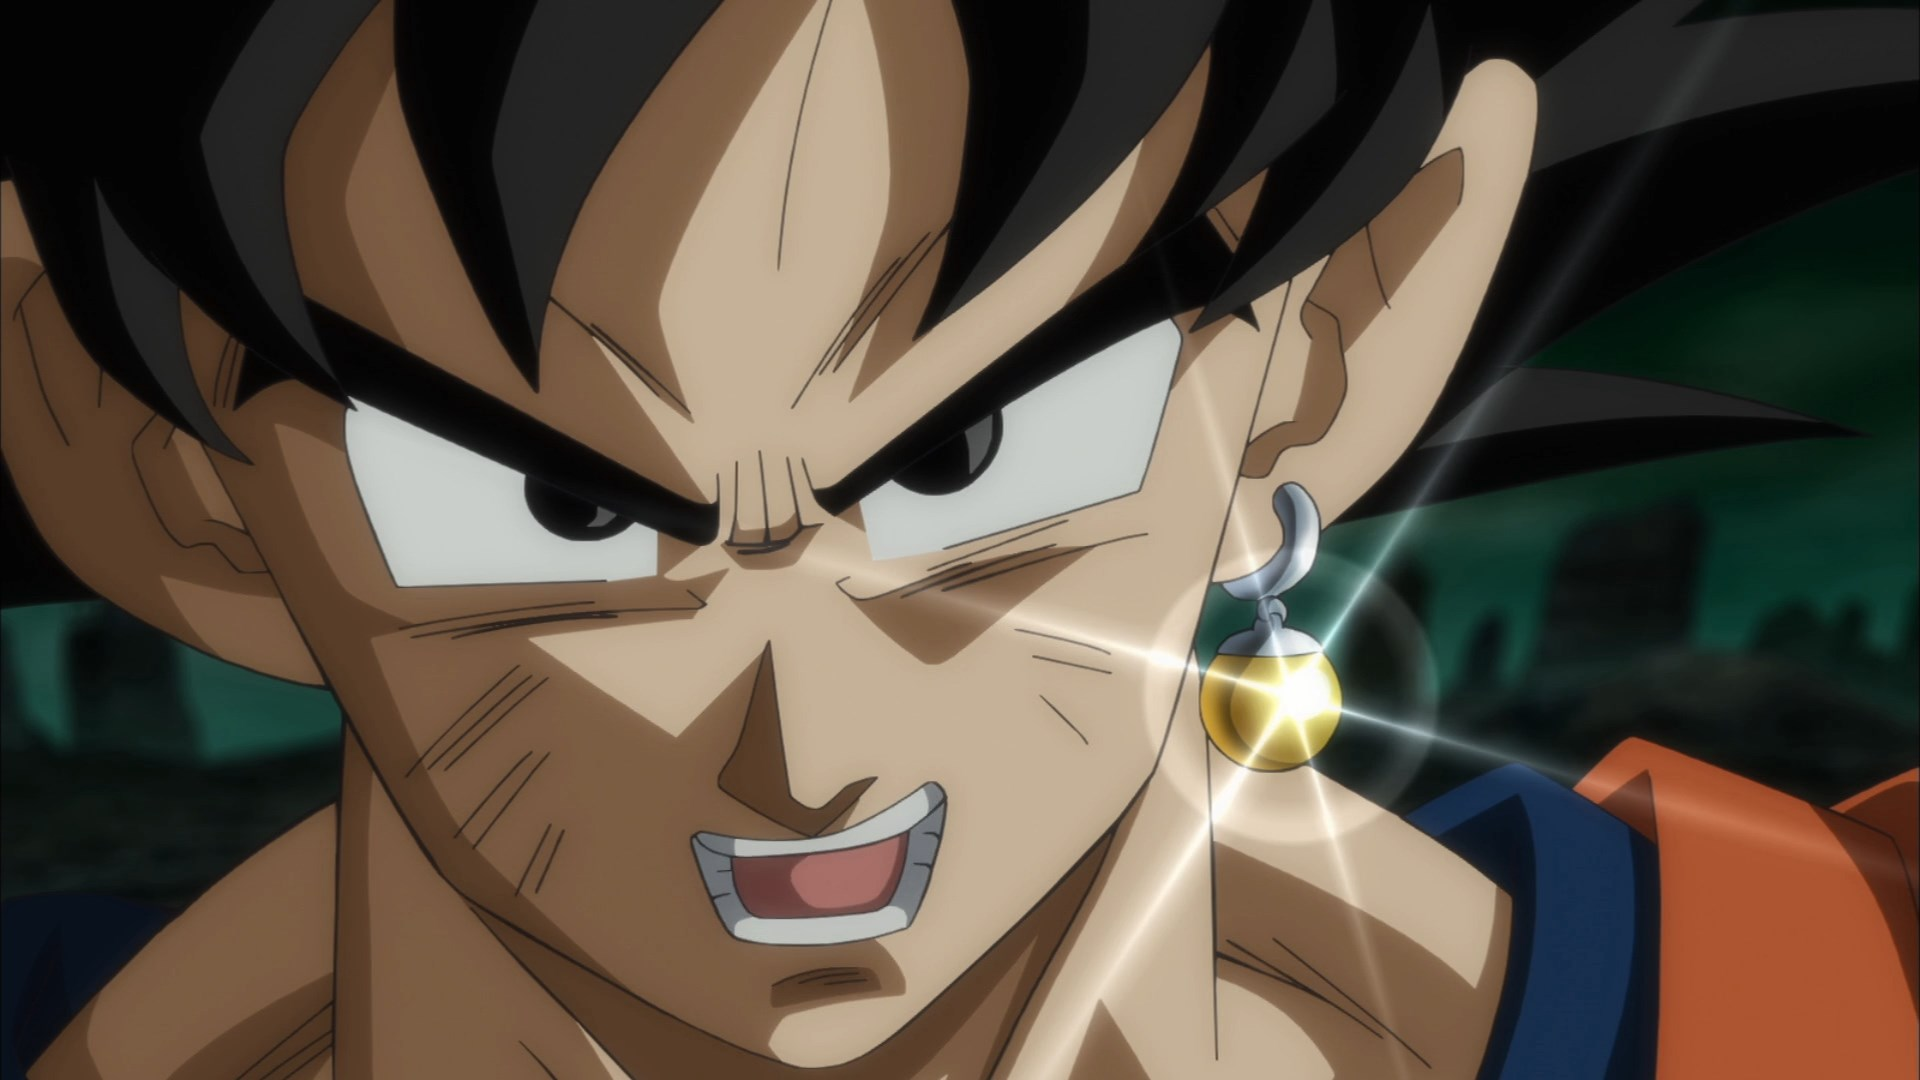 Dragon Ball Super - Goku potara